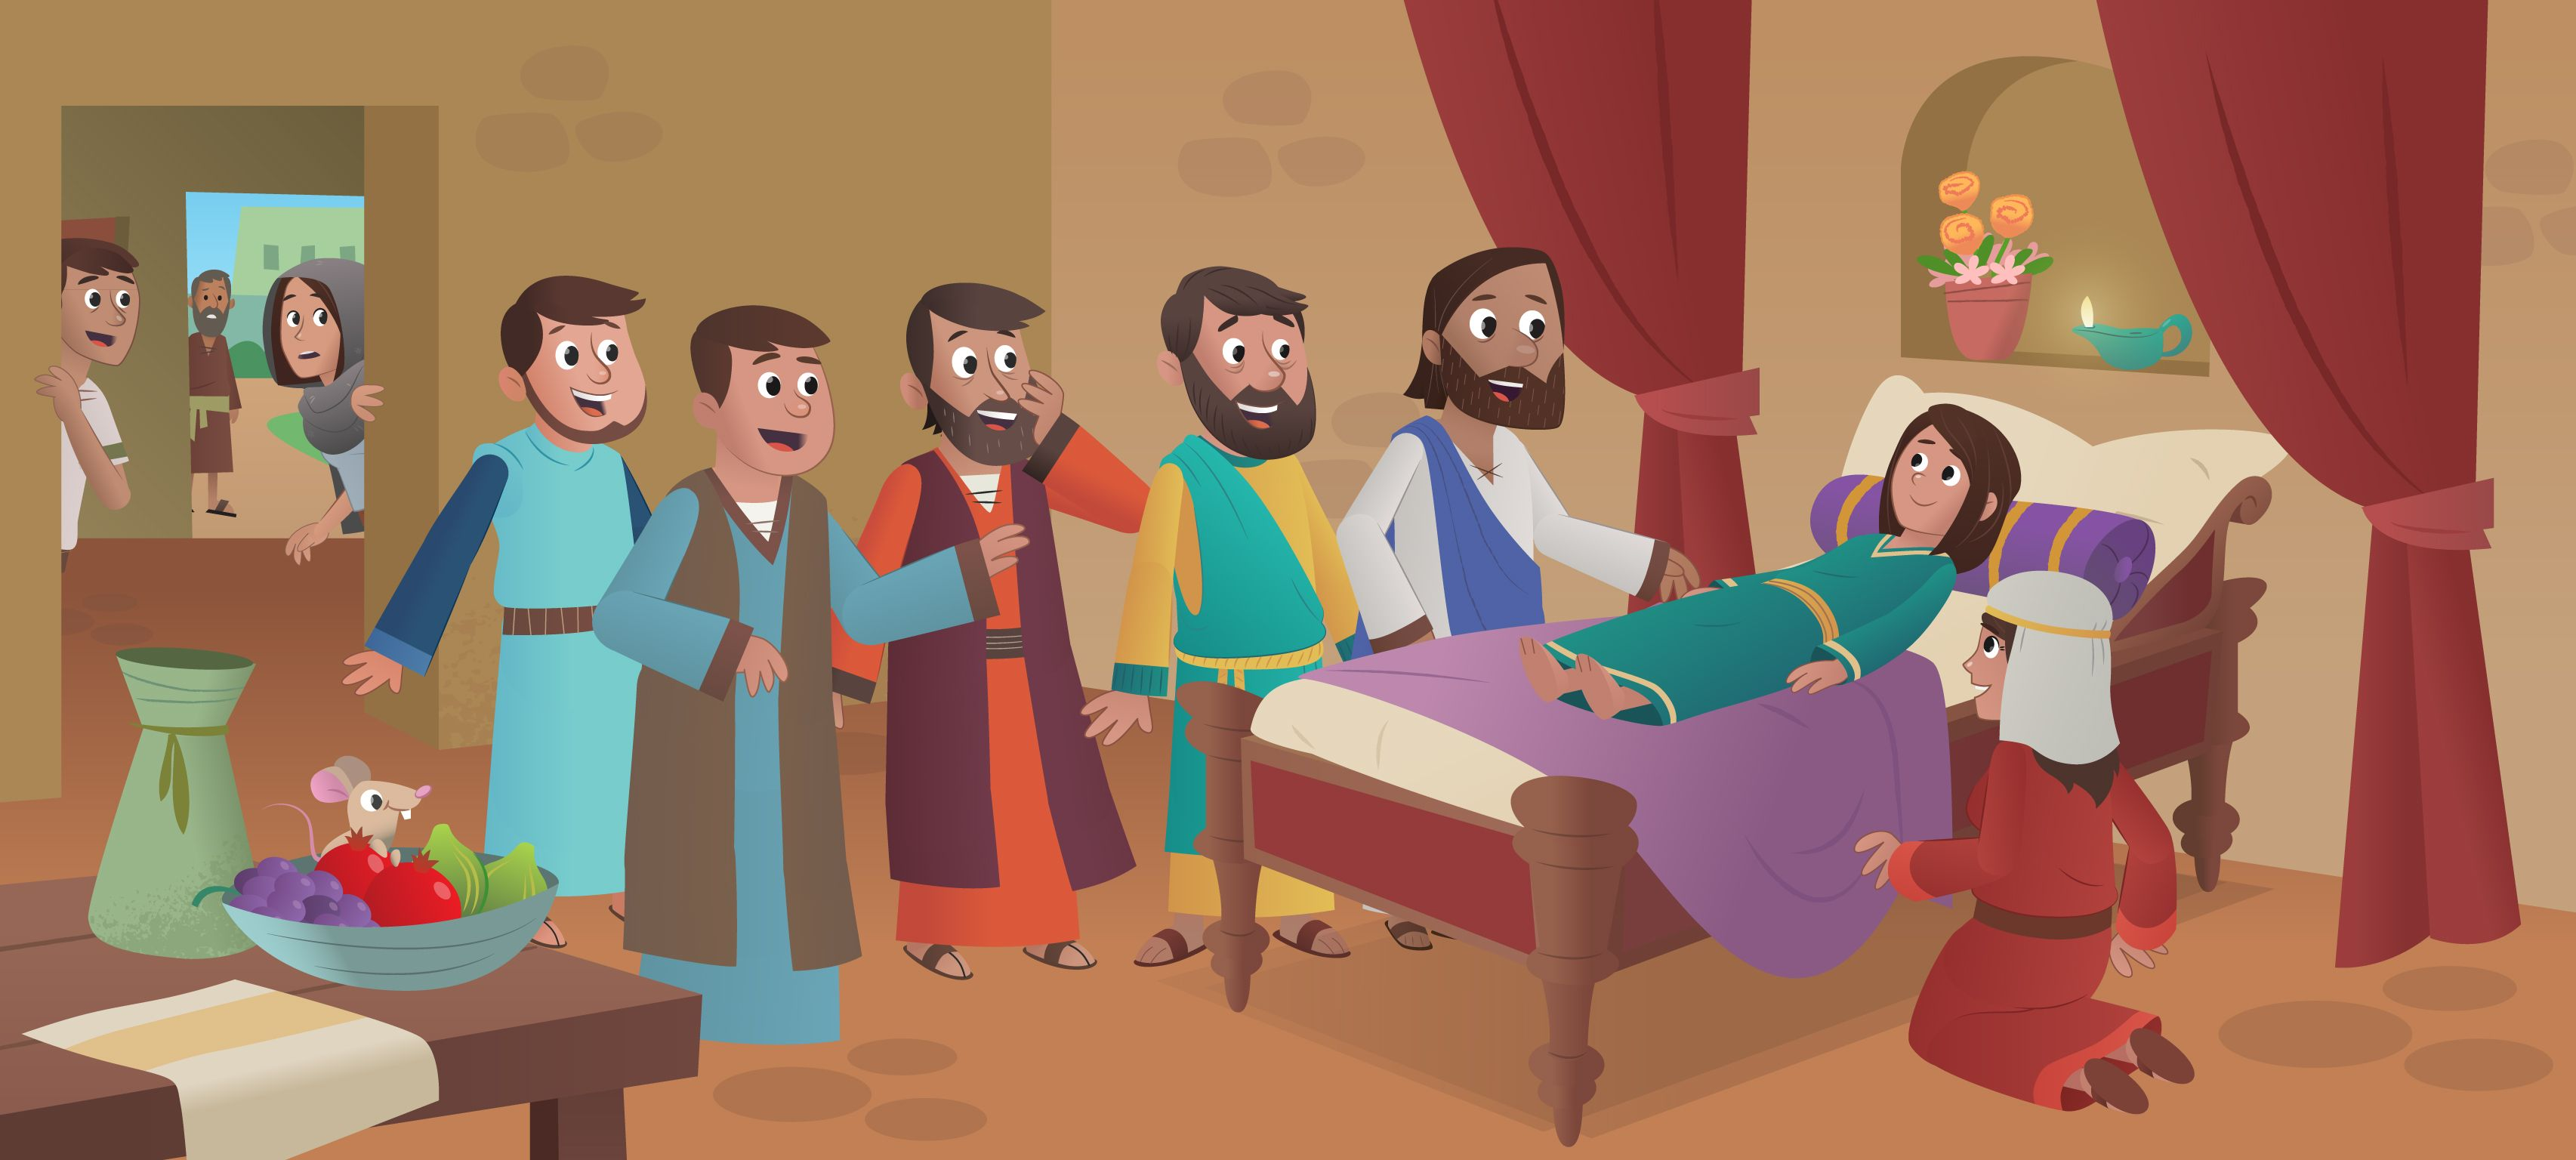 In The Latest Story From The Bible App For Kids Time To